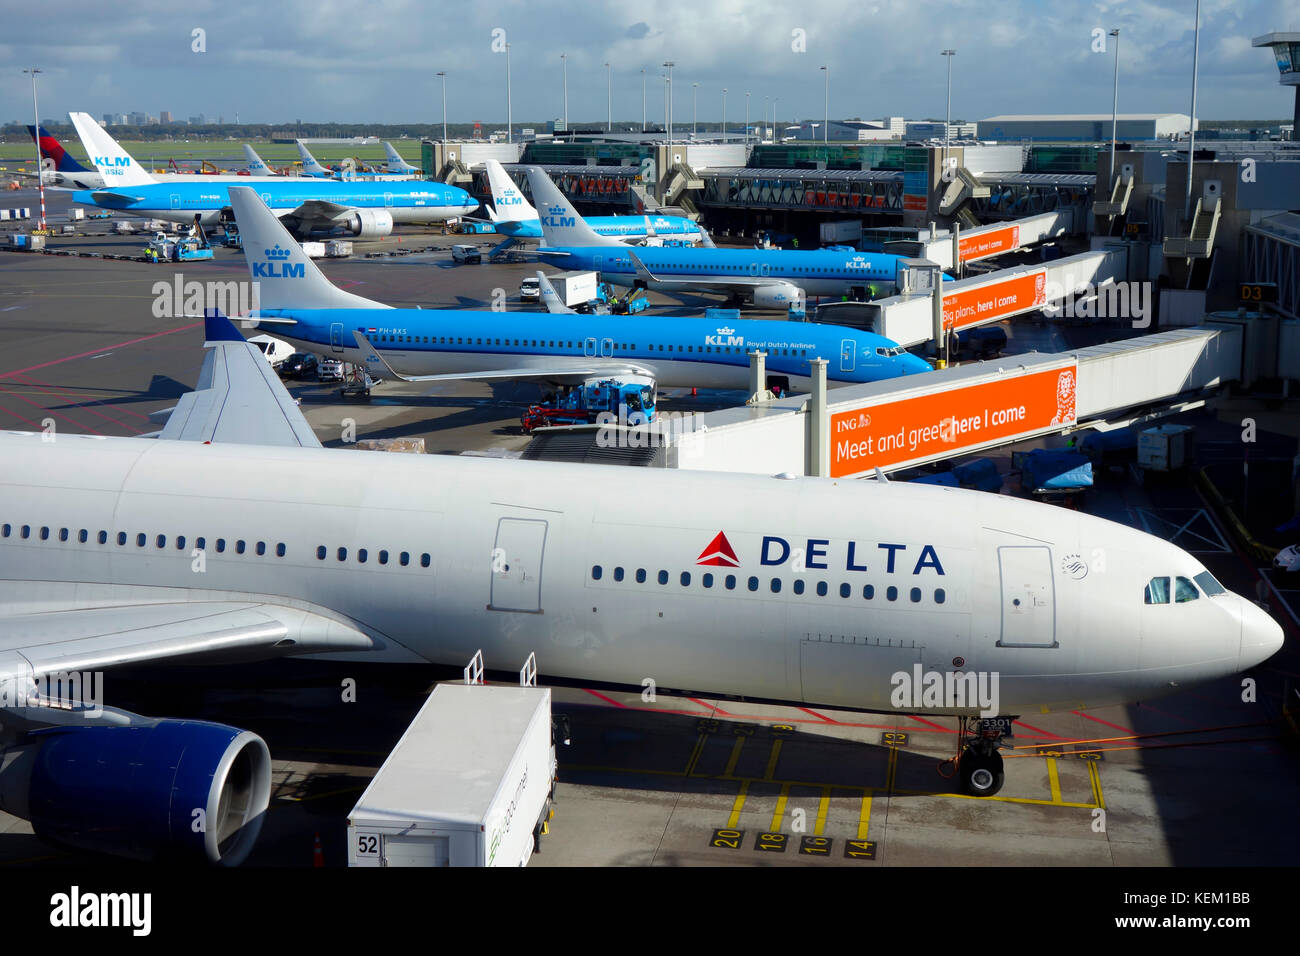 Delta and KLM aircraft on the runway awaiting departure at Amsterdam Schiphol Airport. - Stock Image